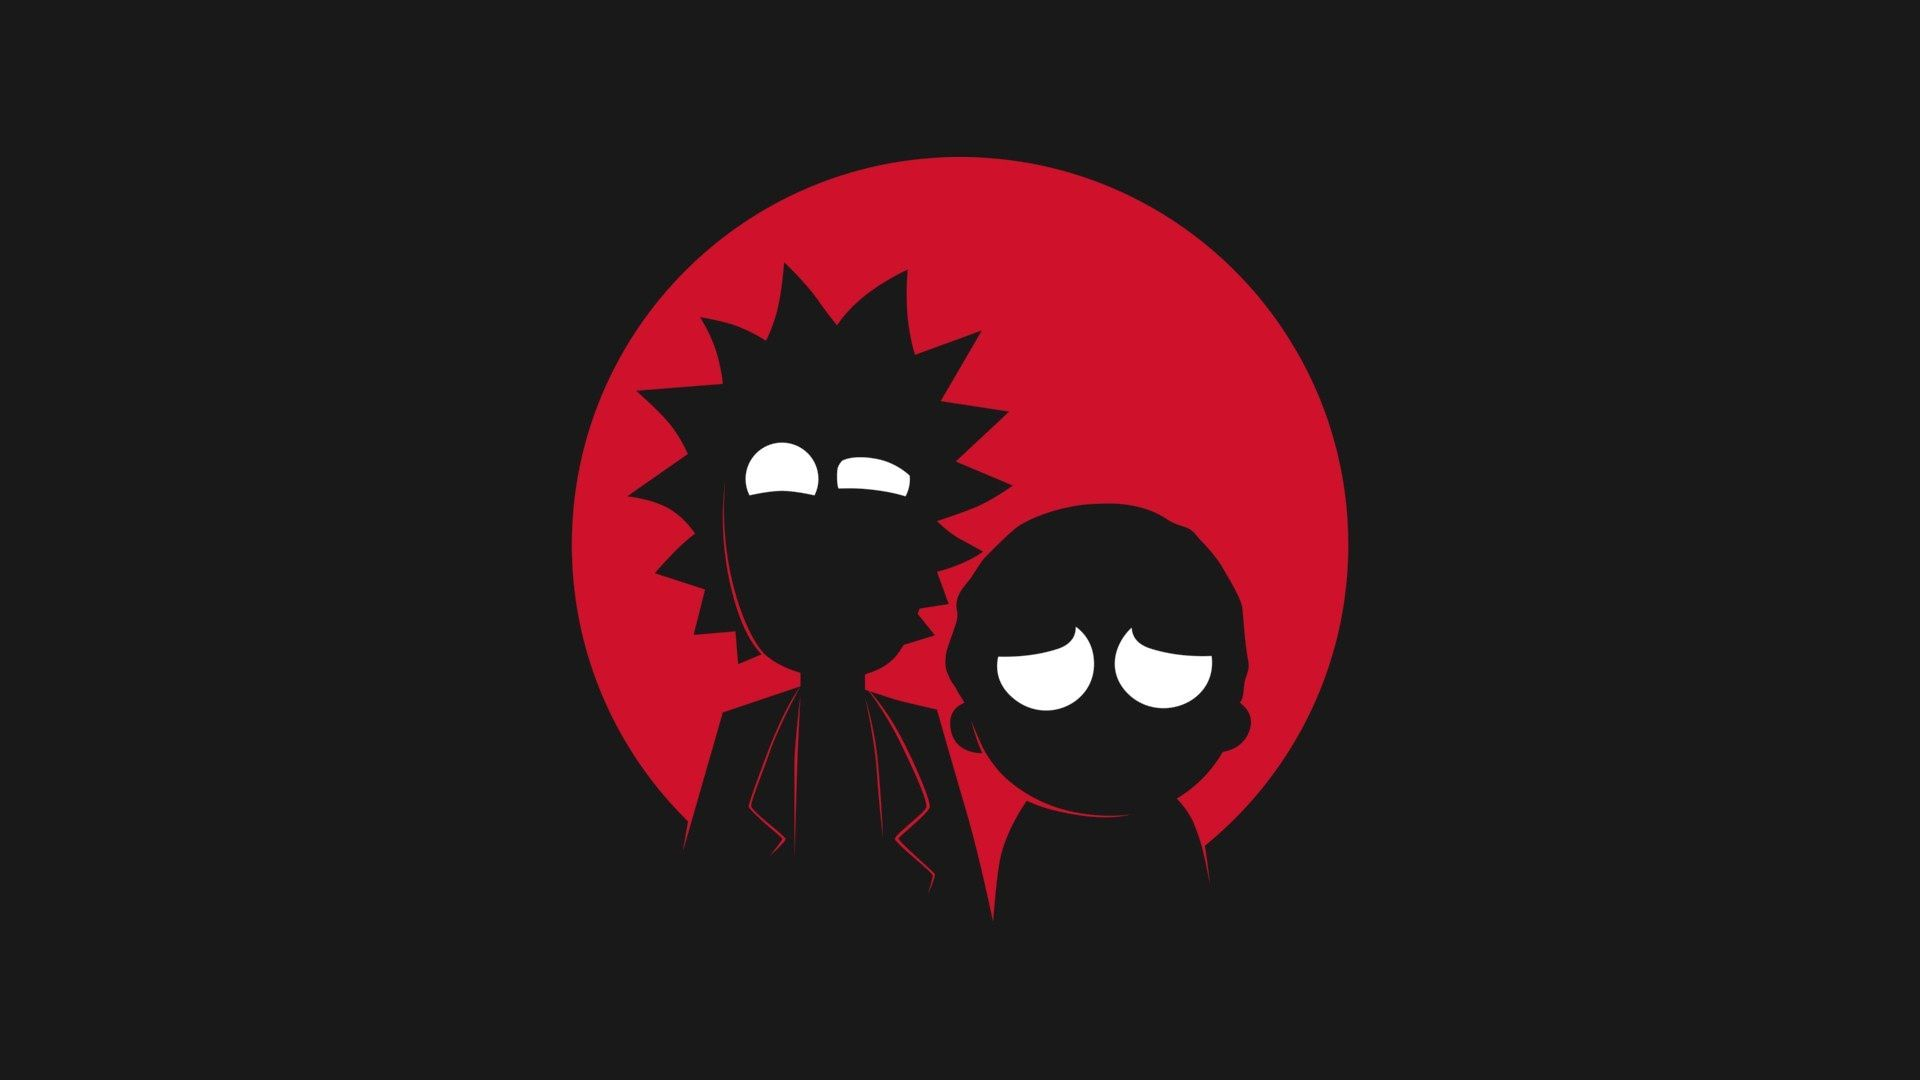 Funny Meme Iphone Wallpapers : Minimalist rick and morty wallpaper wallpapers pinterest